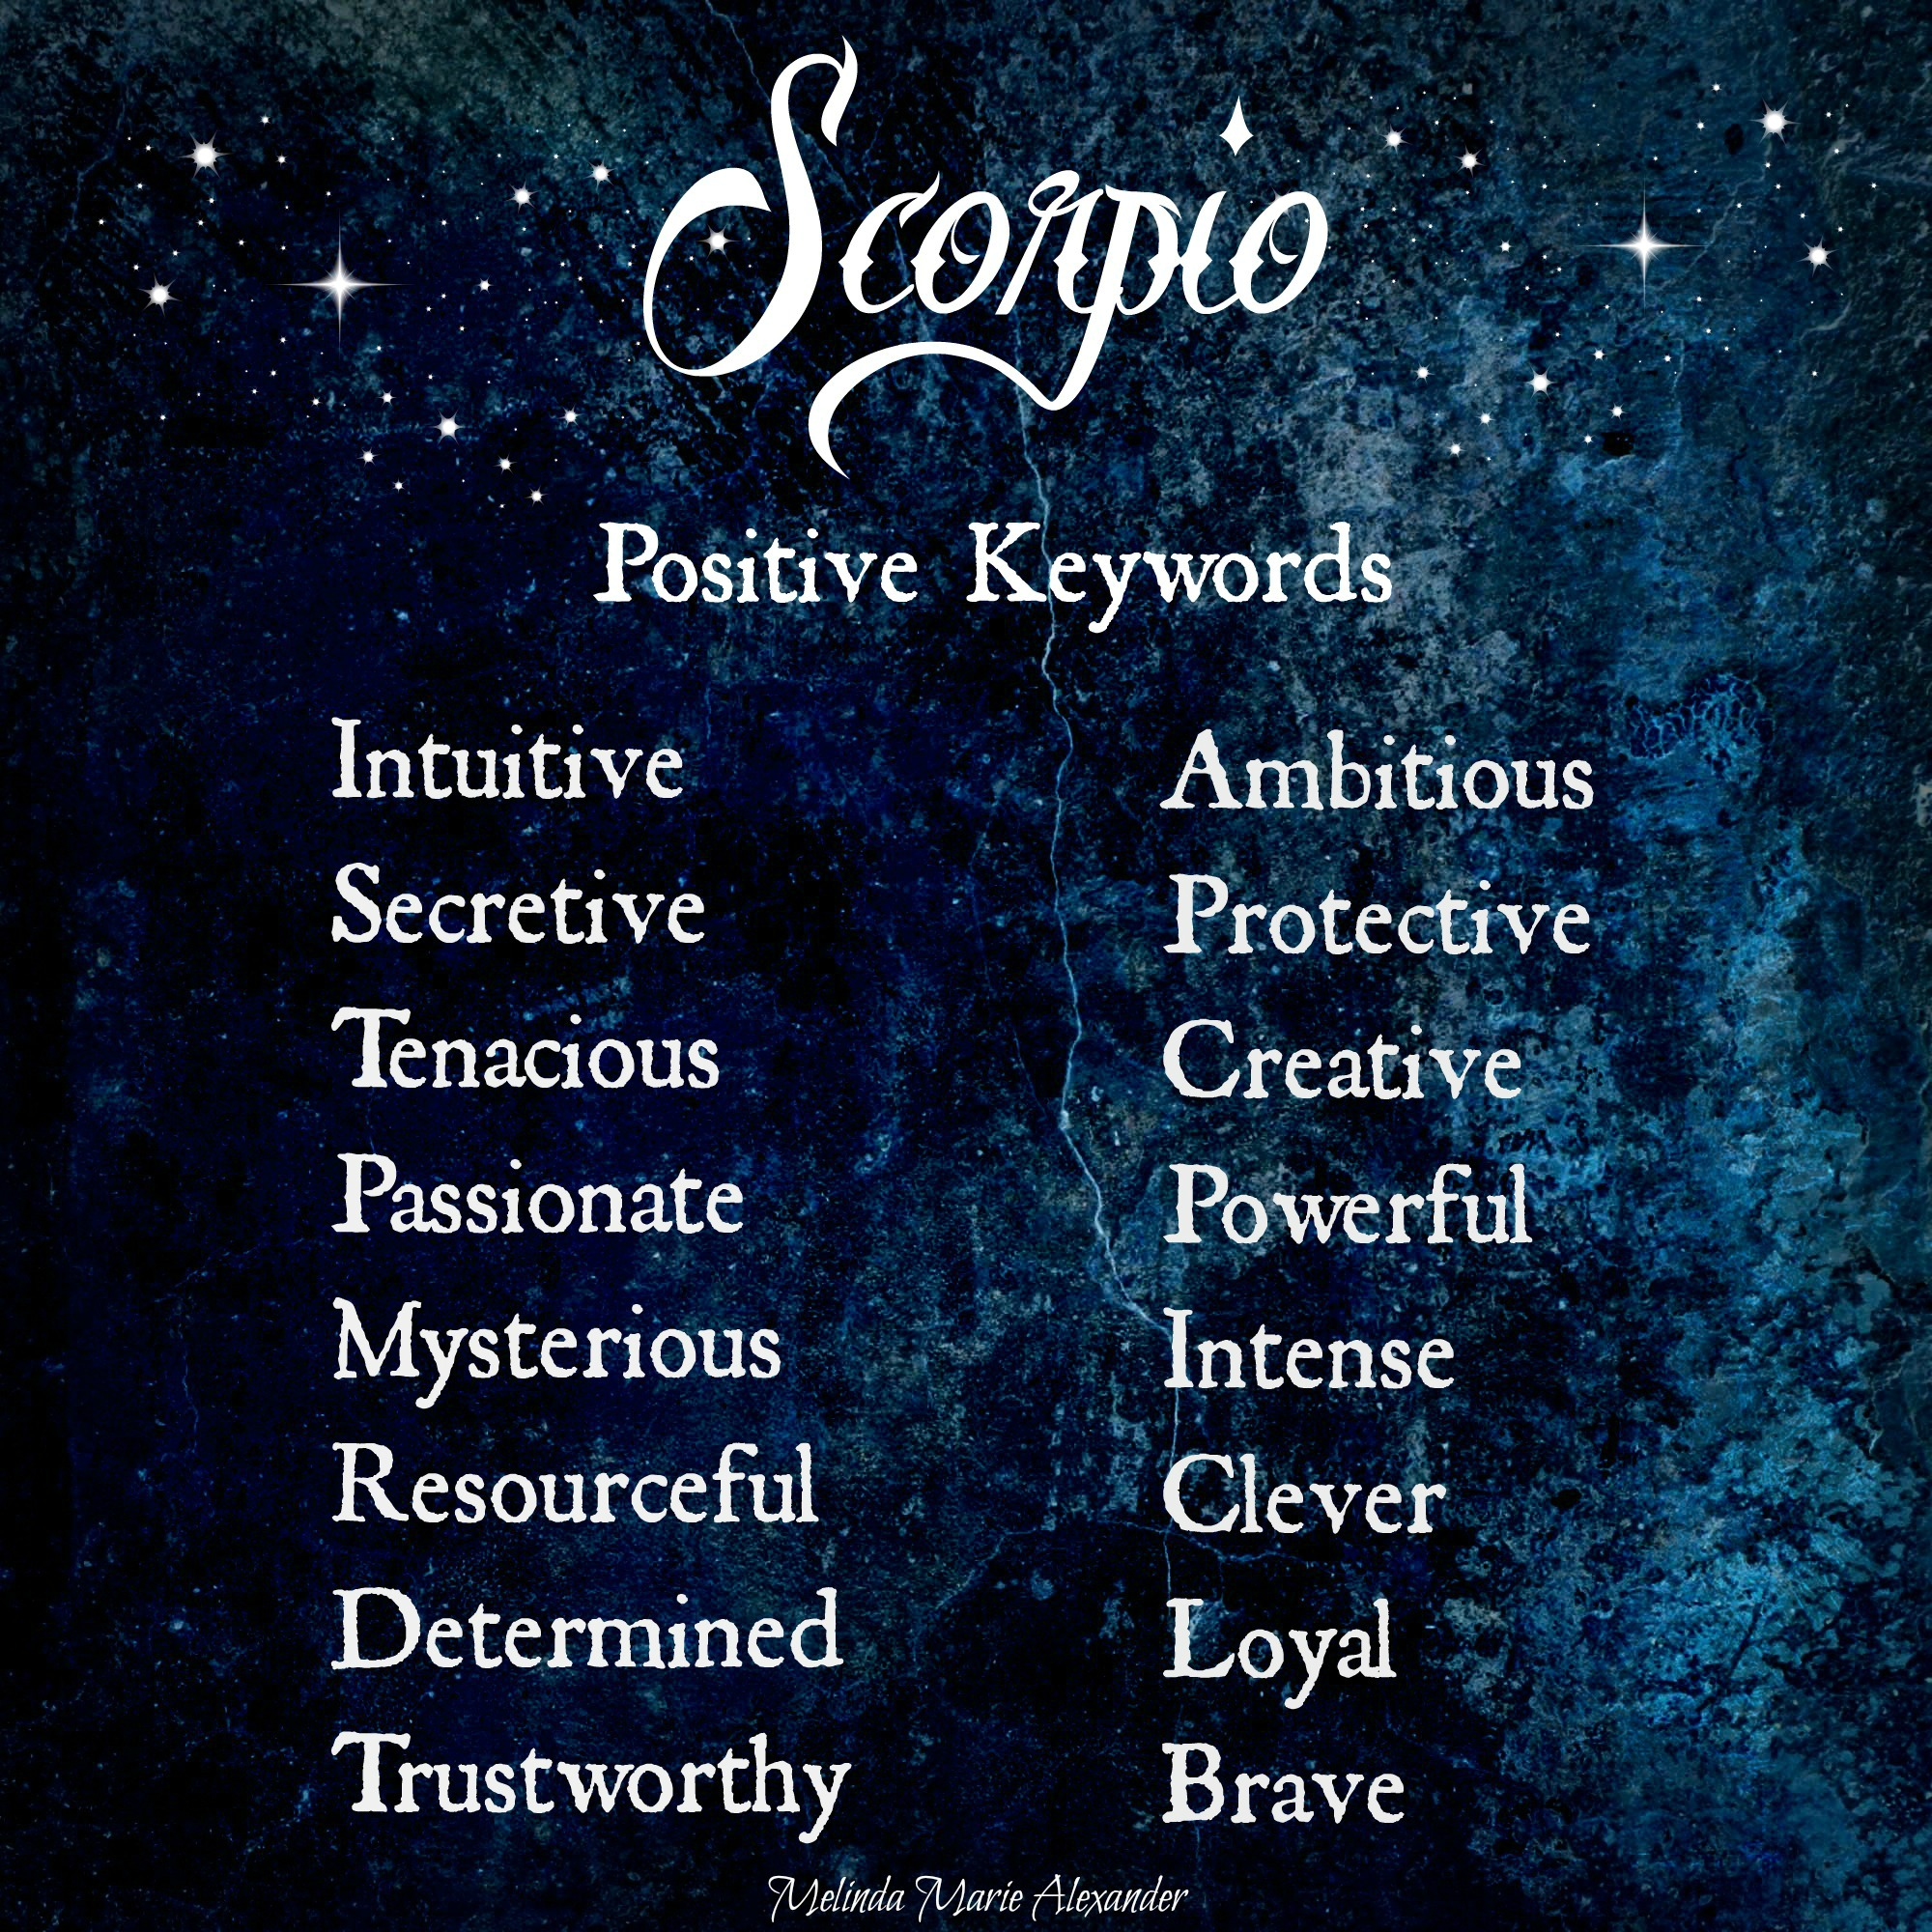 scorpio positive keywords withtextandstars